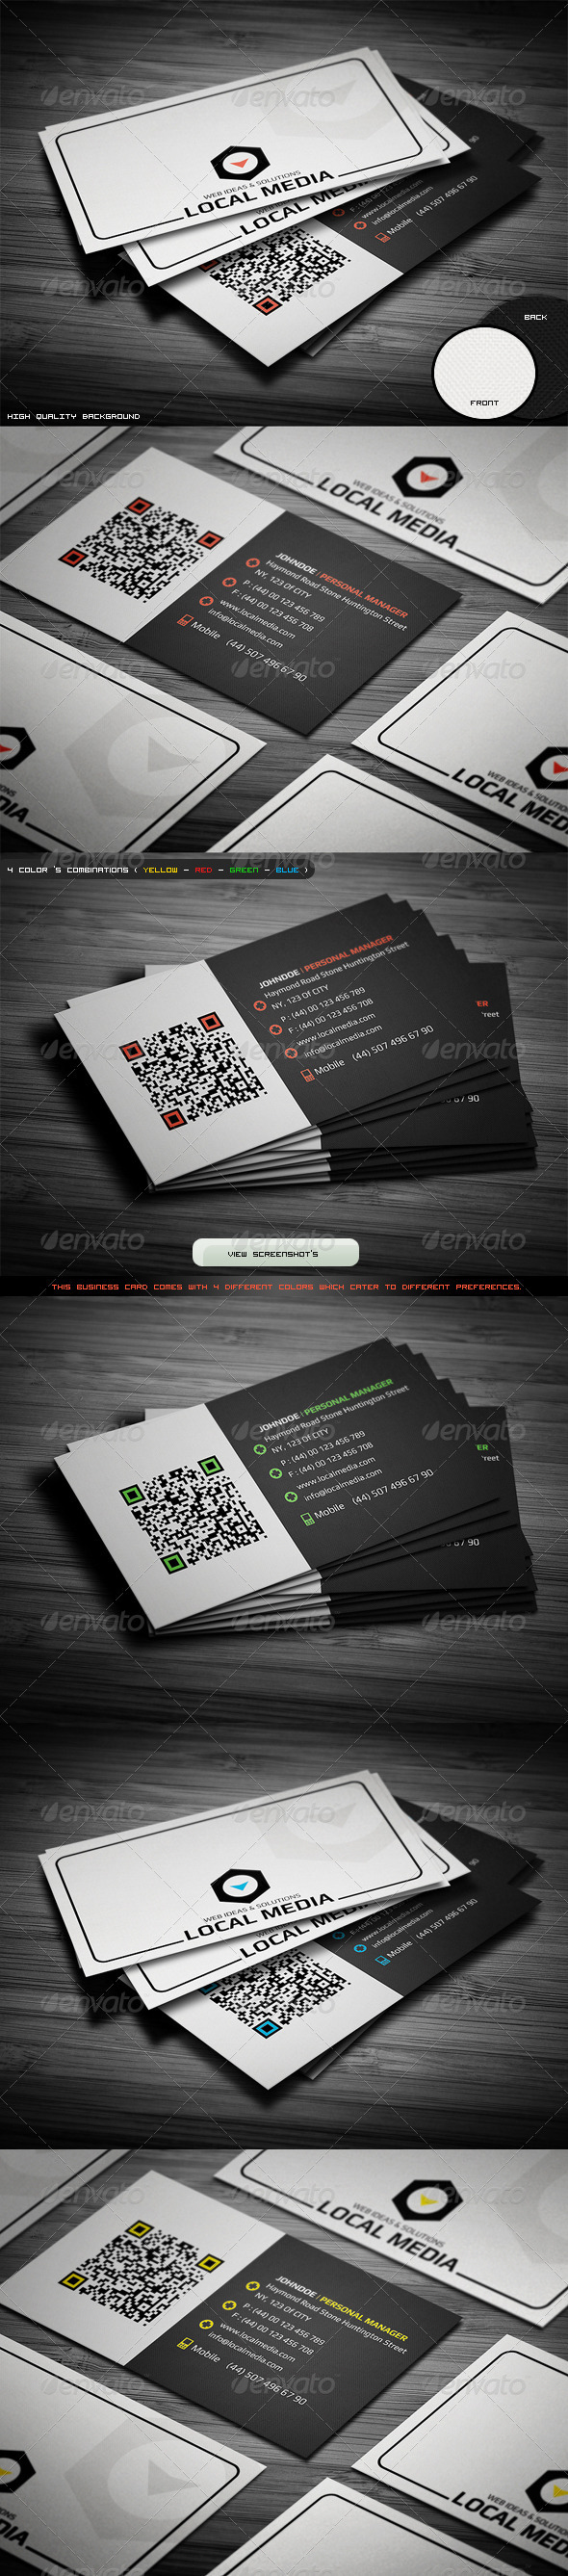 Professional Business Card http://graphicriver.net/item/professional ...